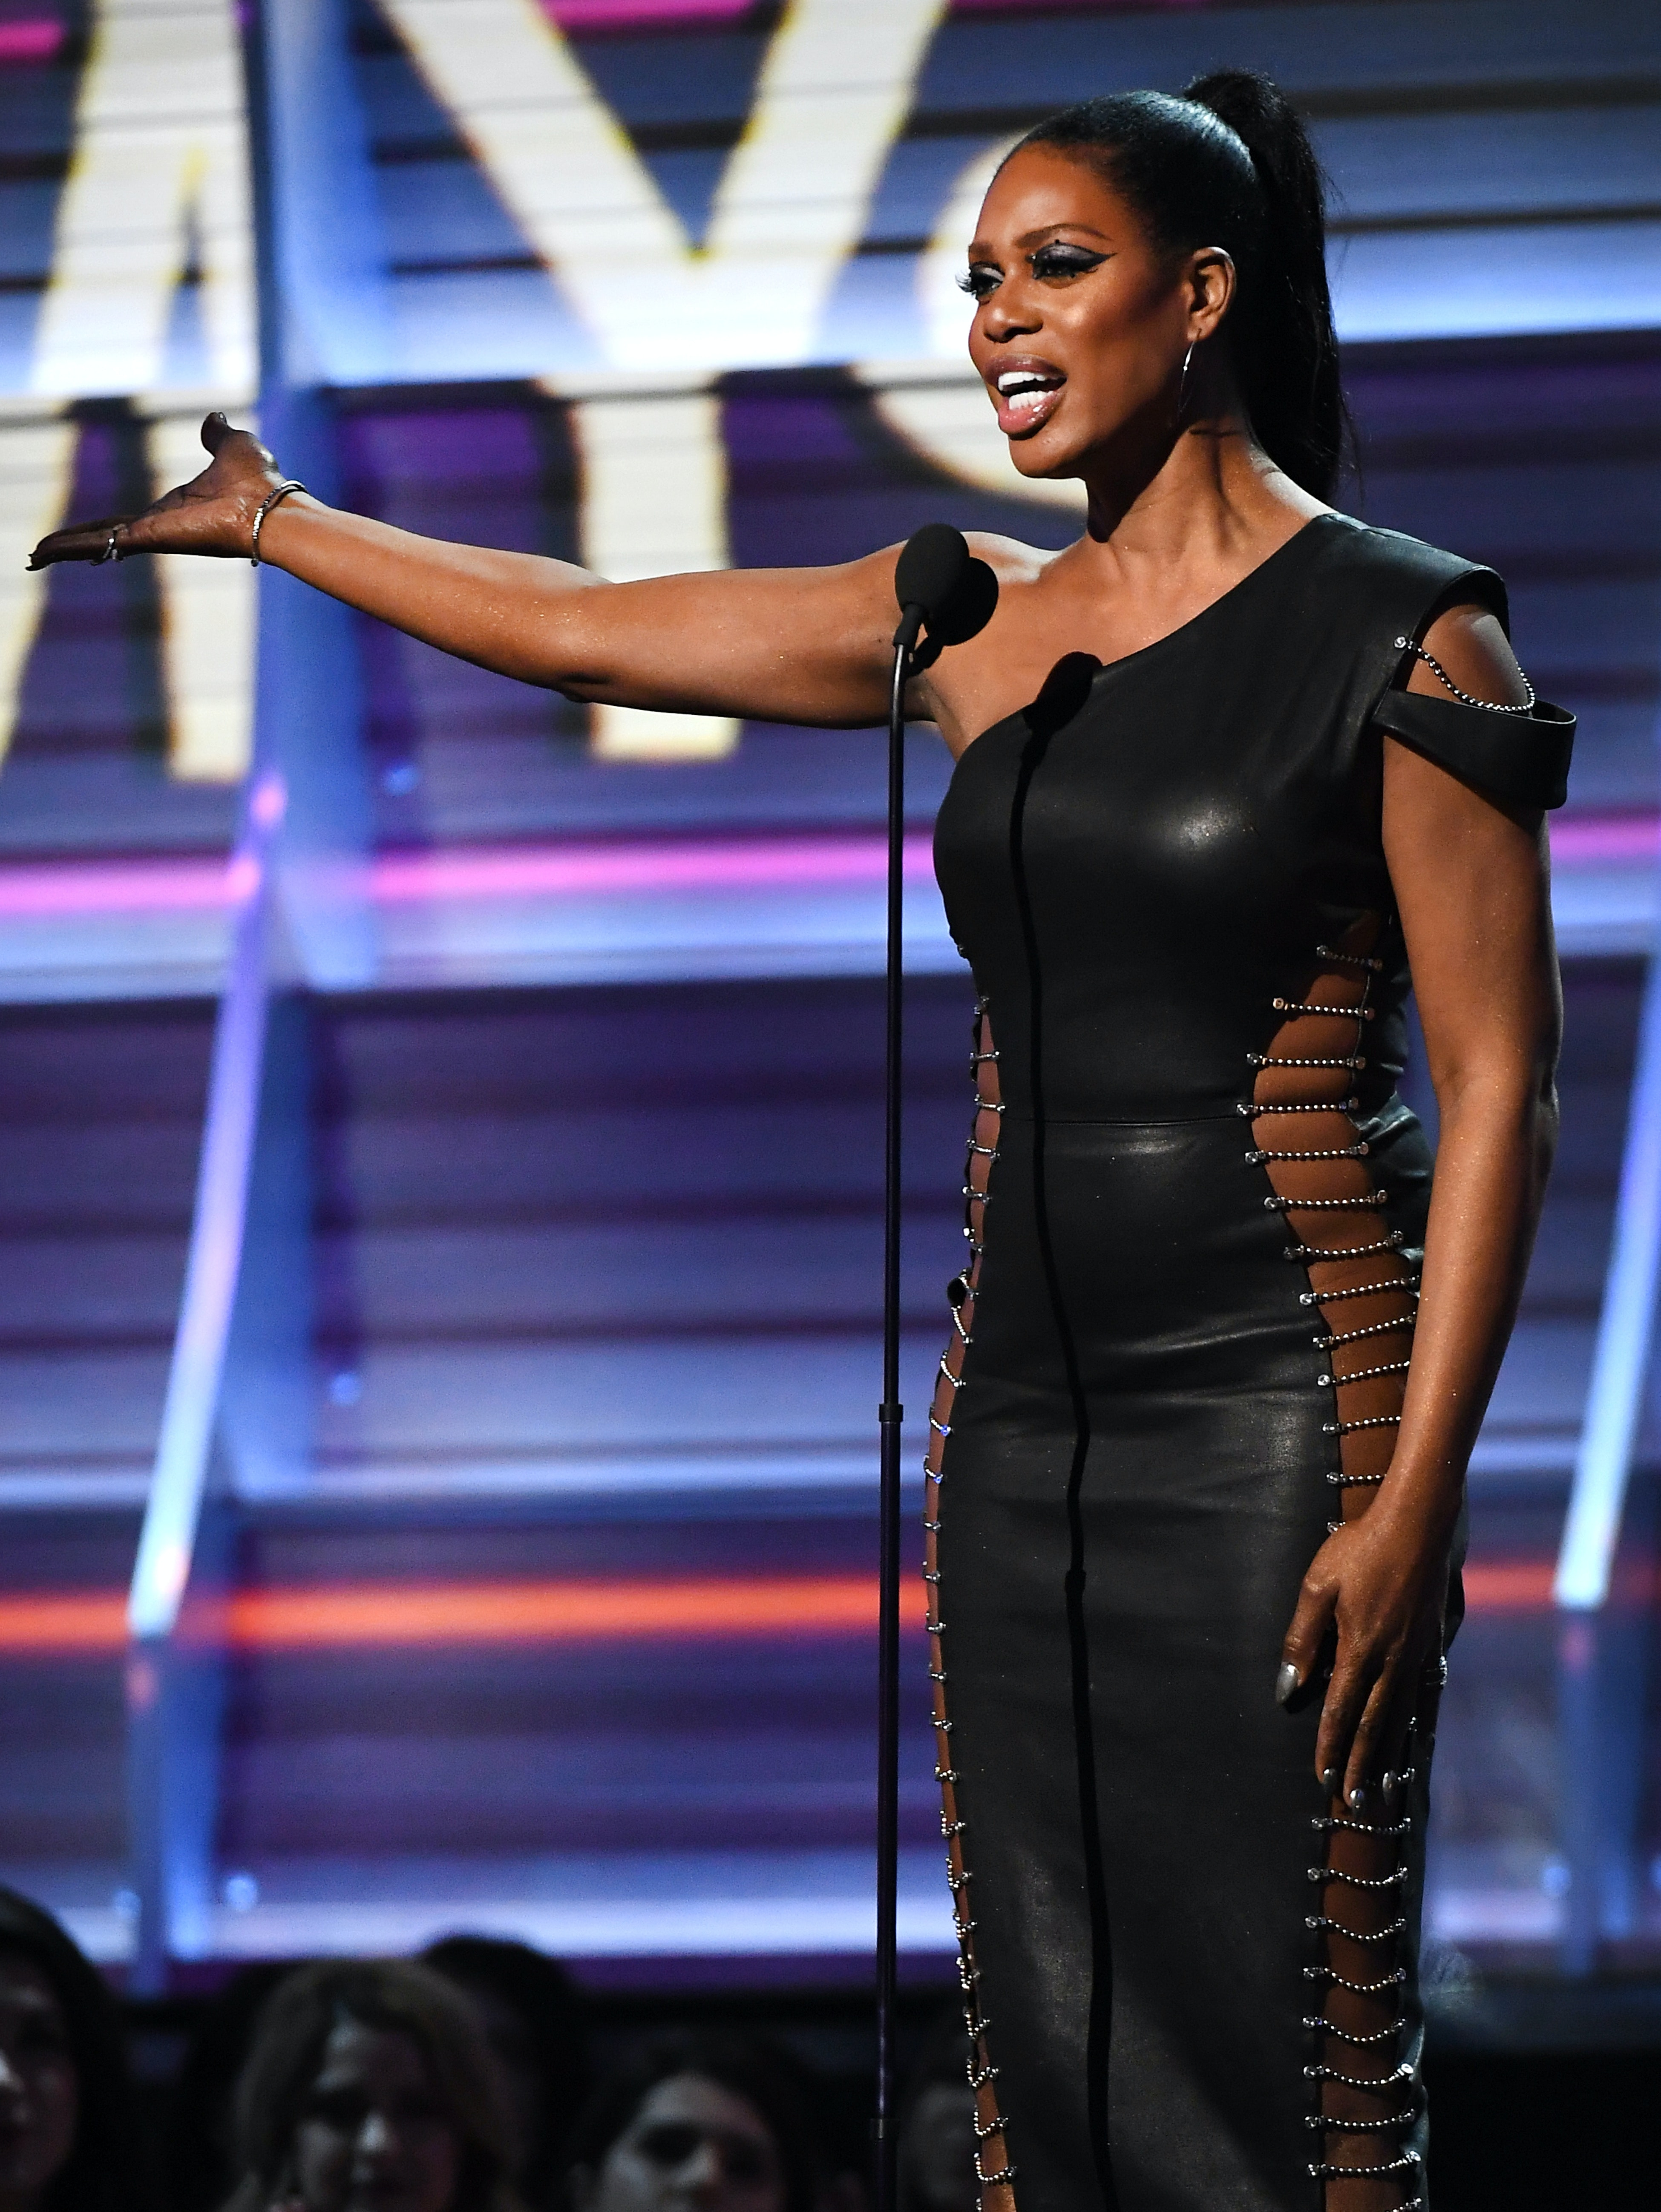 LOS ANGELES, CA - FEBRUARY 12: Actor Laverne Cox speaks onstage during The 59th GRAMMY Awards at STAPLES Center on February 12, 2017 in Los Angeles, California.